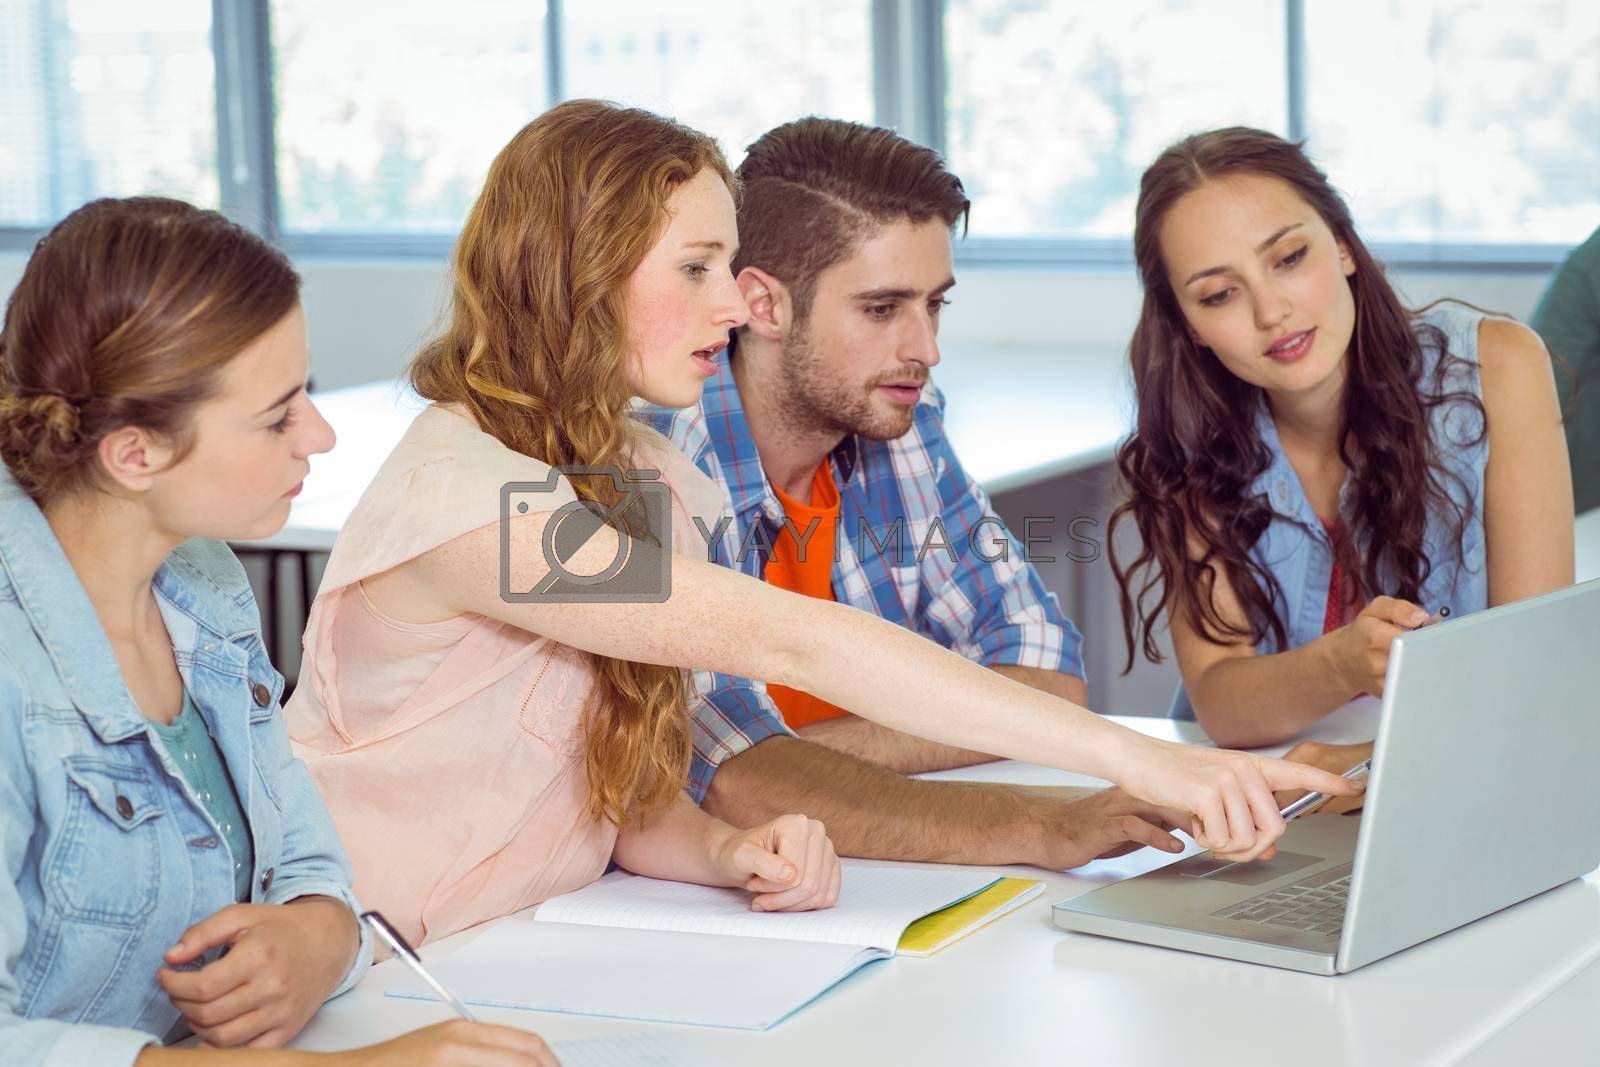 Fashion students looking at laptop at the college